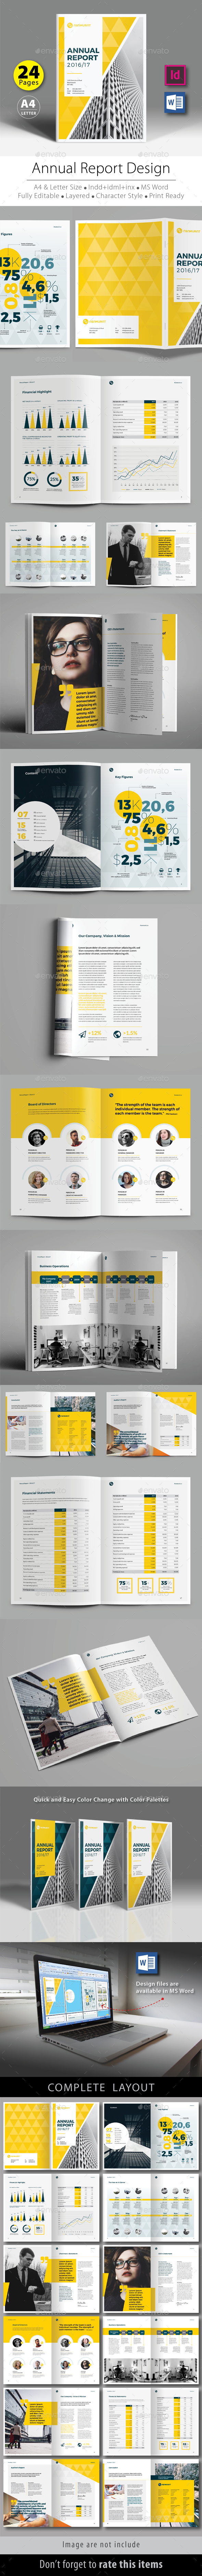 Annual Report Design Template V.6 - Corporate Brochures